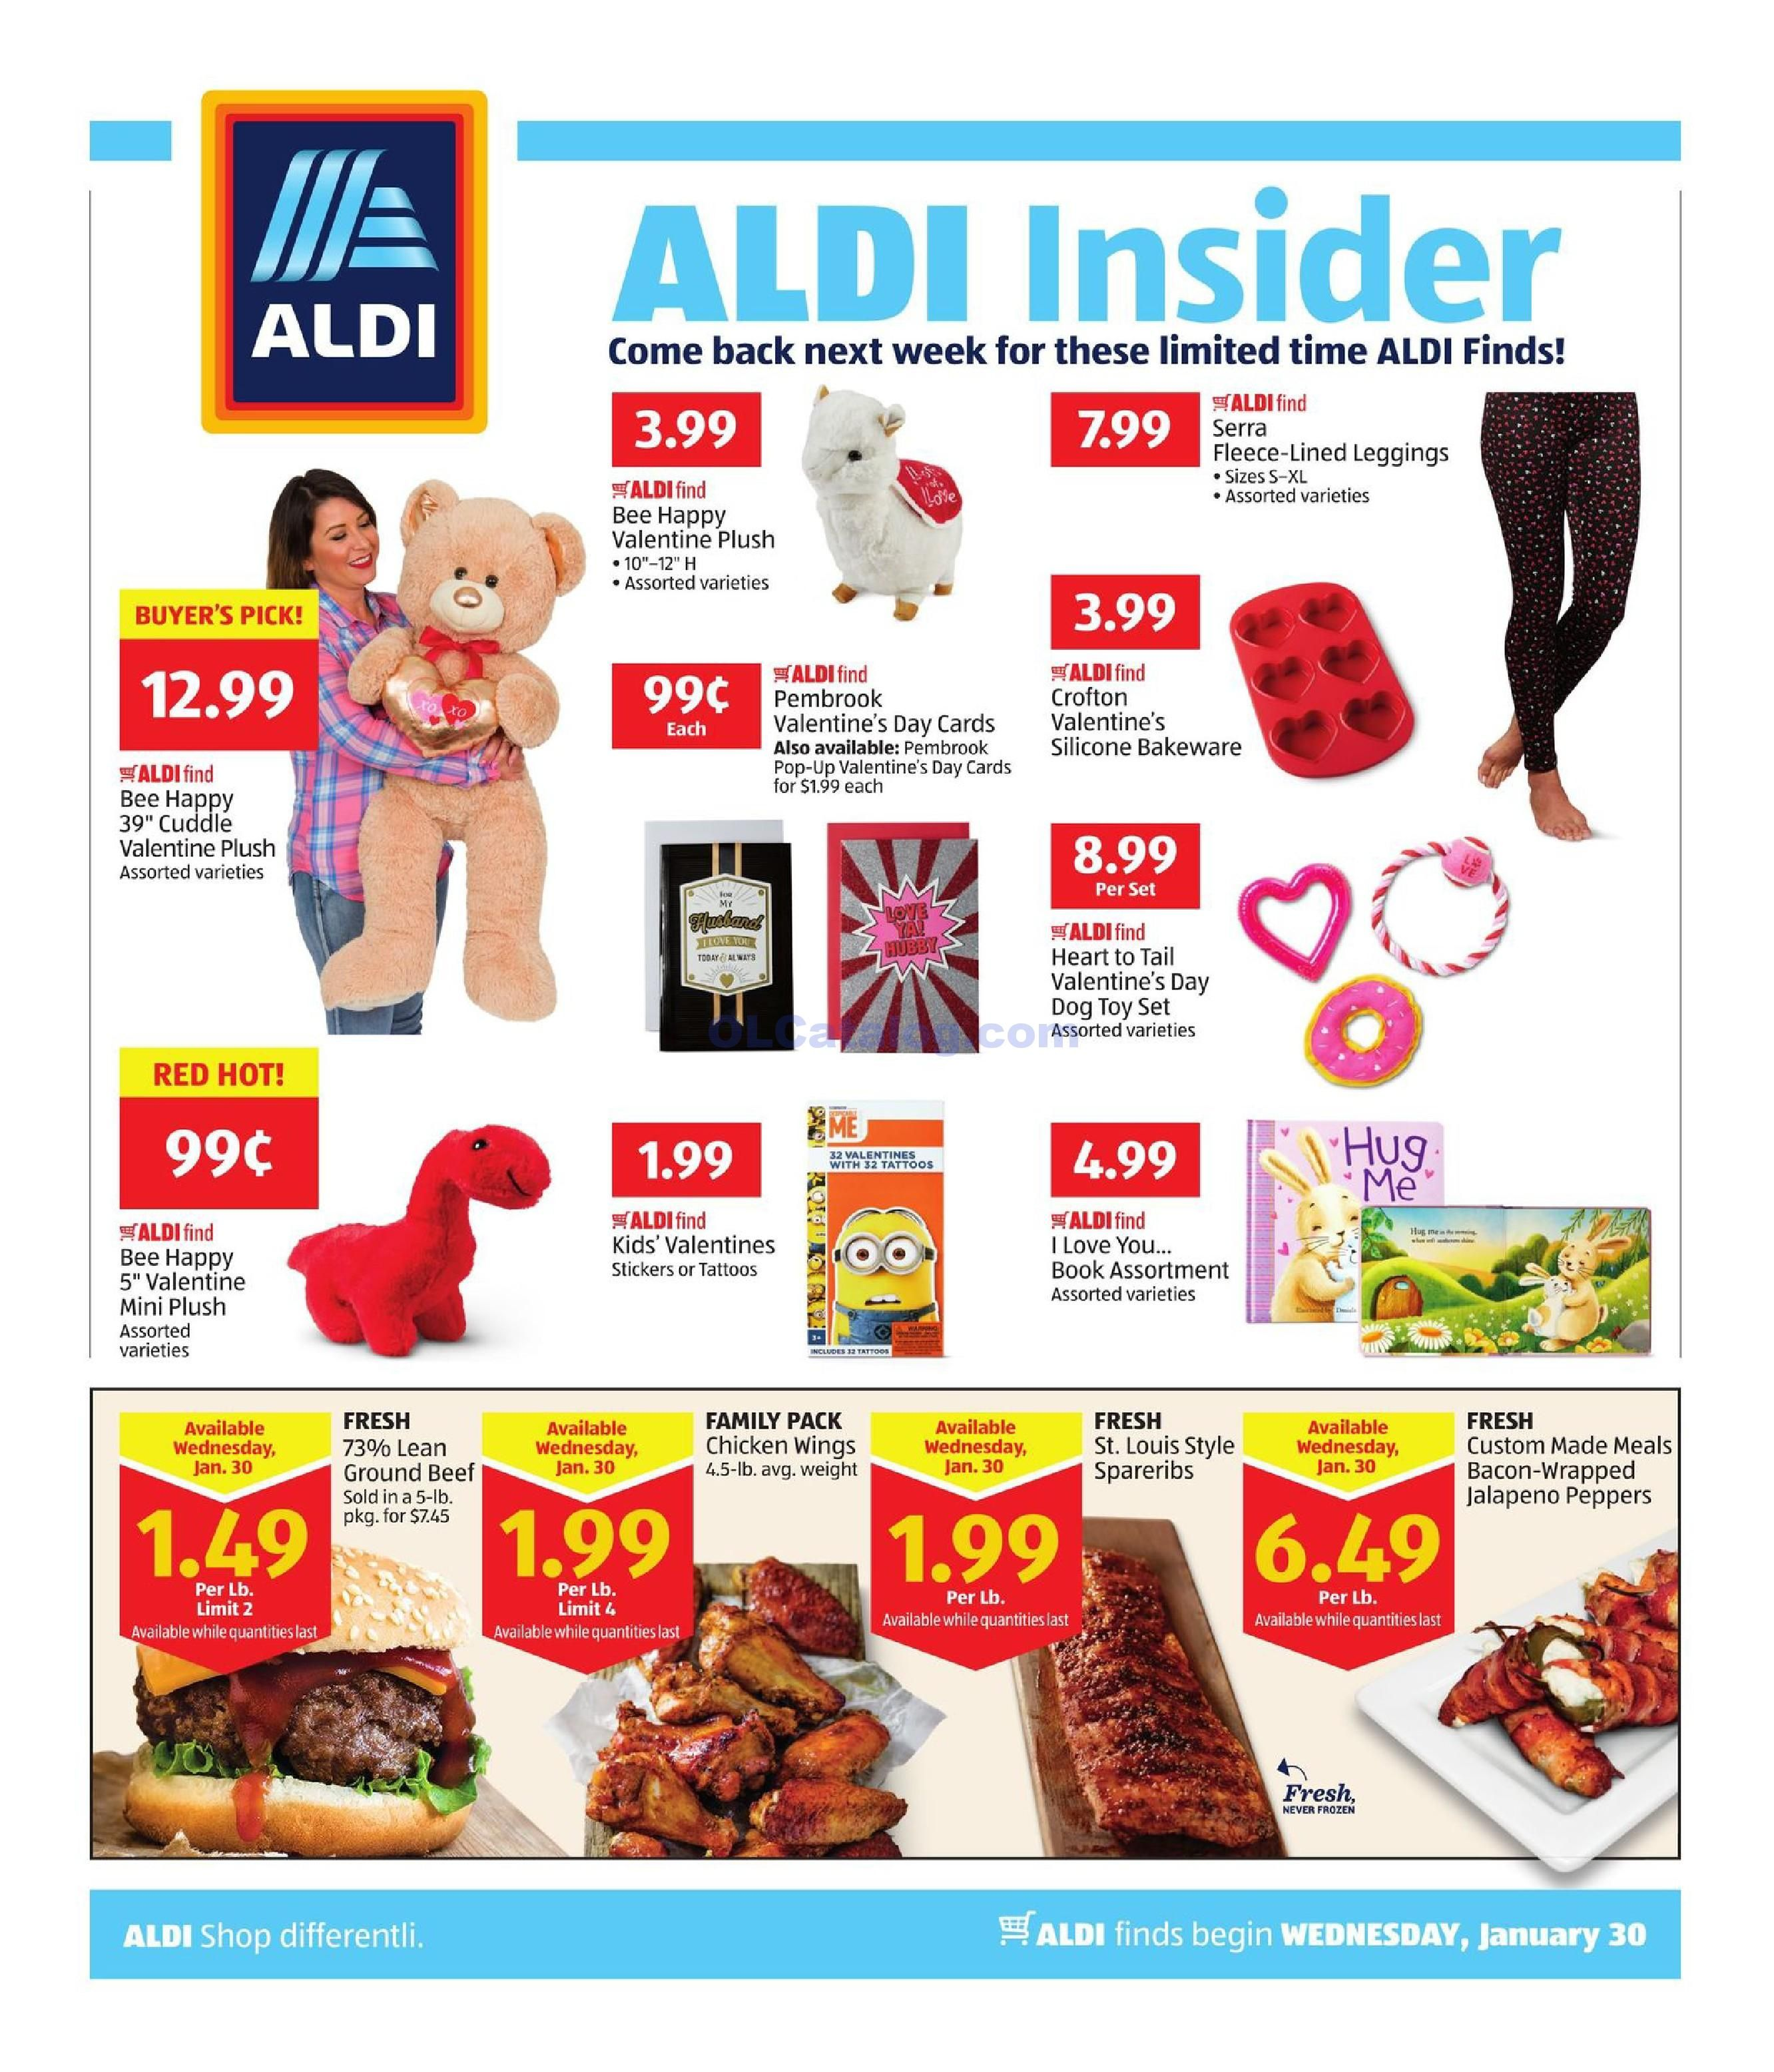 Aldi In Store Ad Starting January 30 February 5 2019 View The Latest Flyer And Weekly Circular Ad For Aldi Here Likewise Yo Aldi Store Ads Digital Coupons